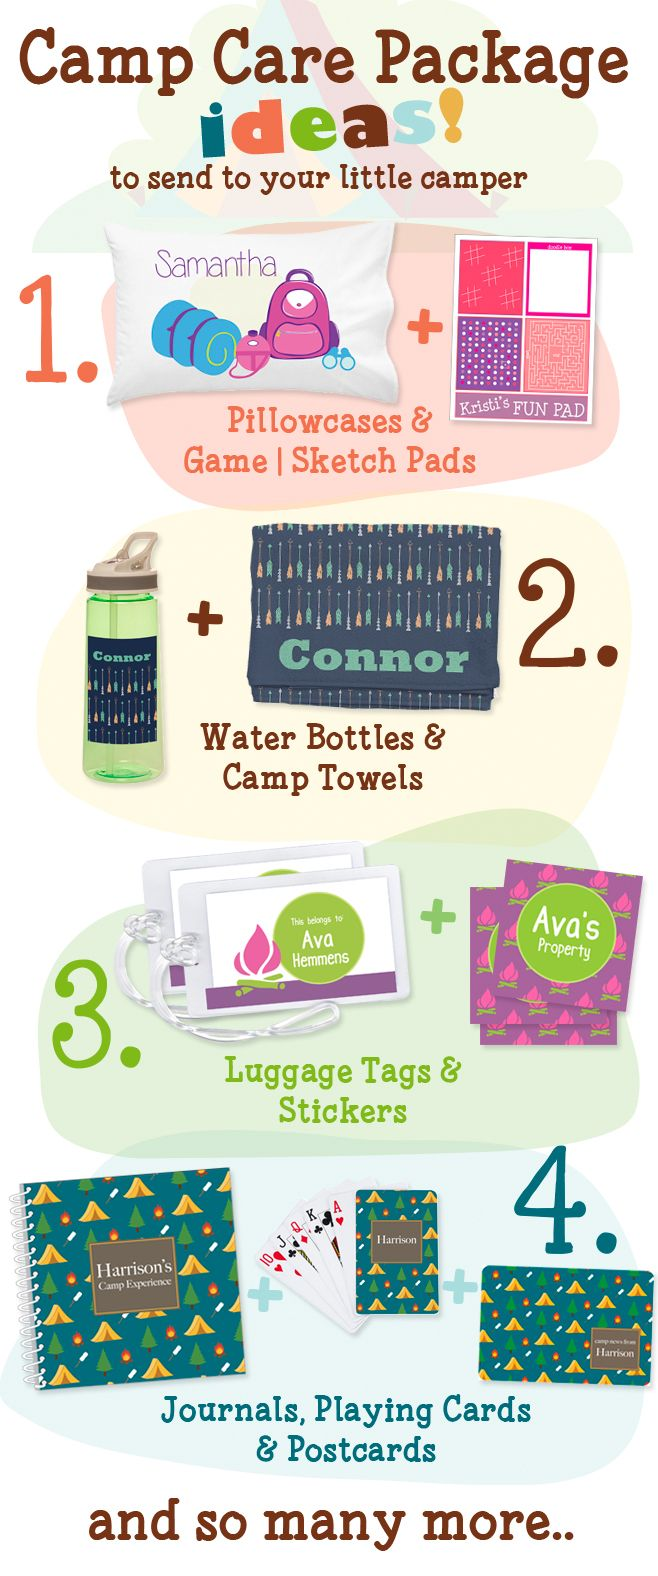 Have a child in camp or going soon? Here are just a few camp care package ideas your child will love. Choose from hundreds of unique gifts, we'll custom personalize them, and can even ship them directly to your camper.